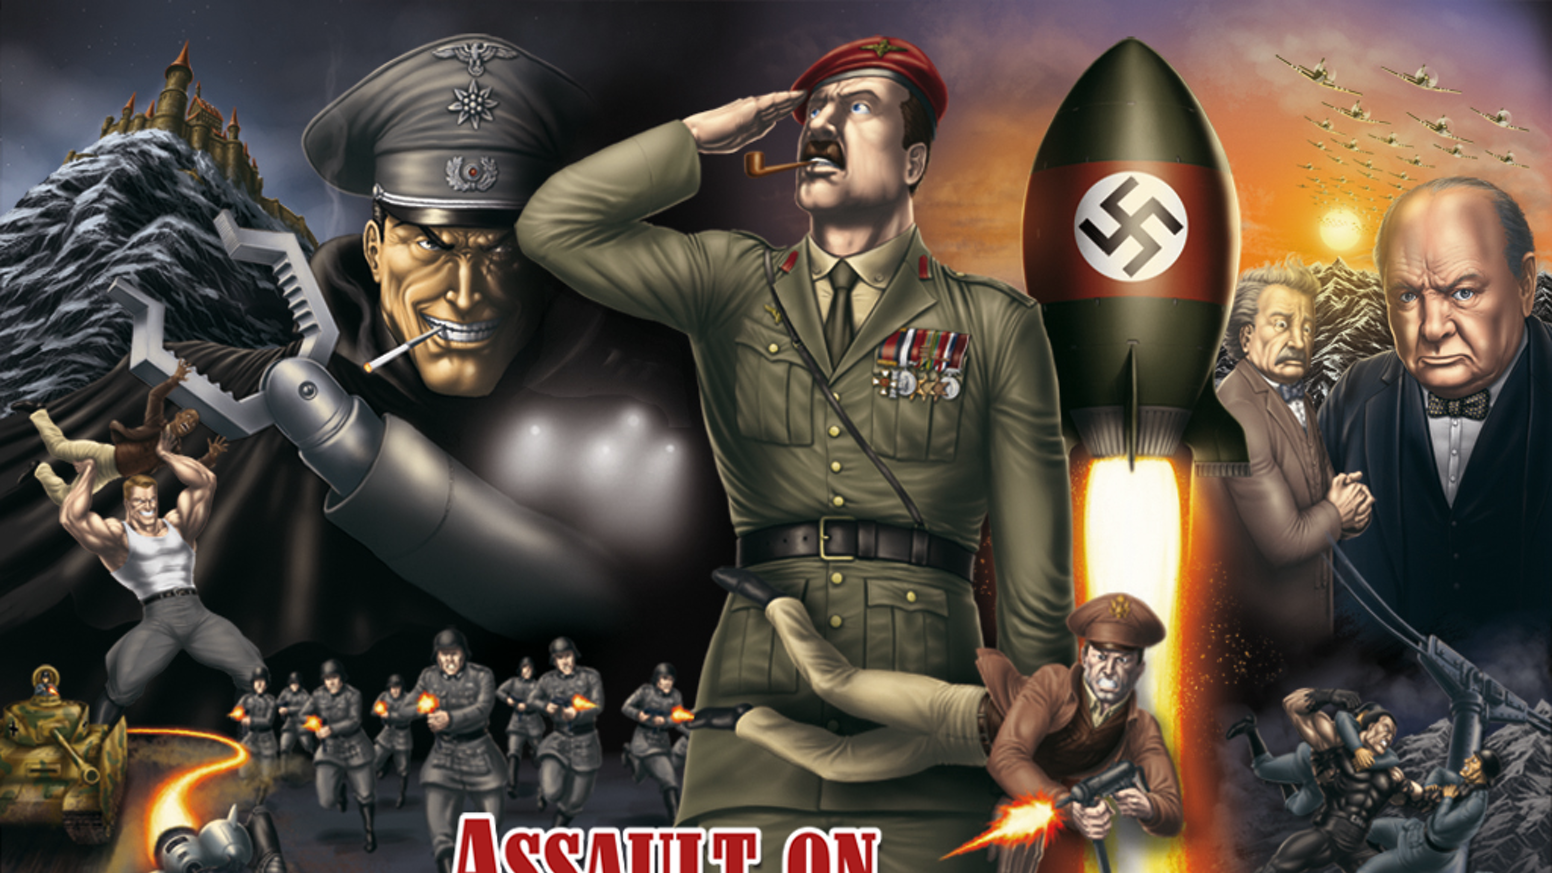 The epic new graphic novel about the greatest secret mission of WW2: a MUST for fans of mind-blowing, Nazi-smashing adventure.